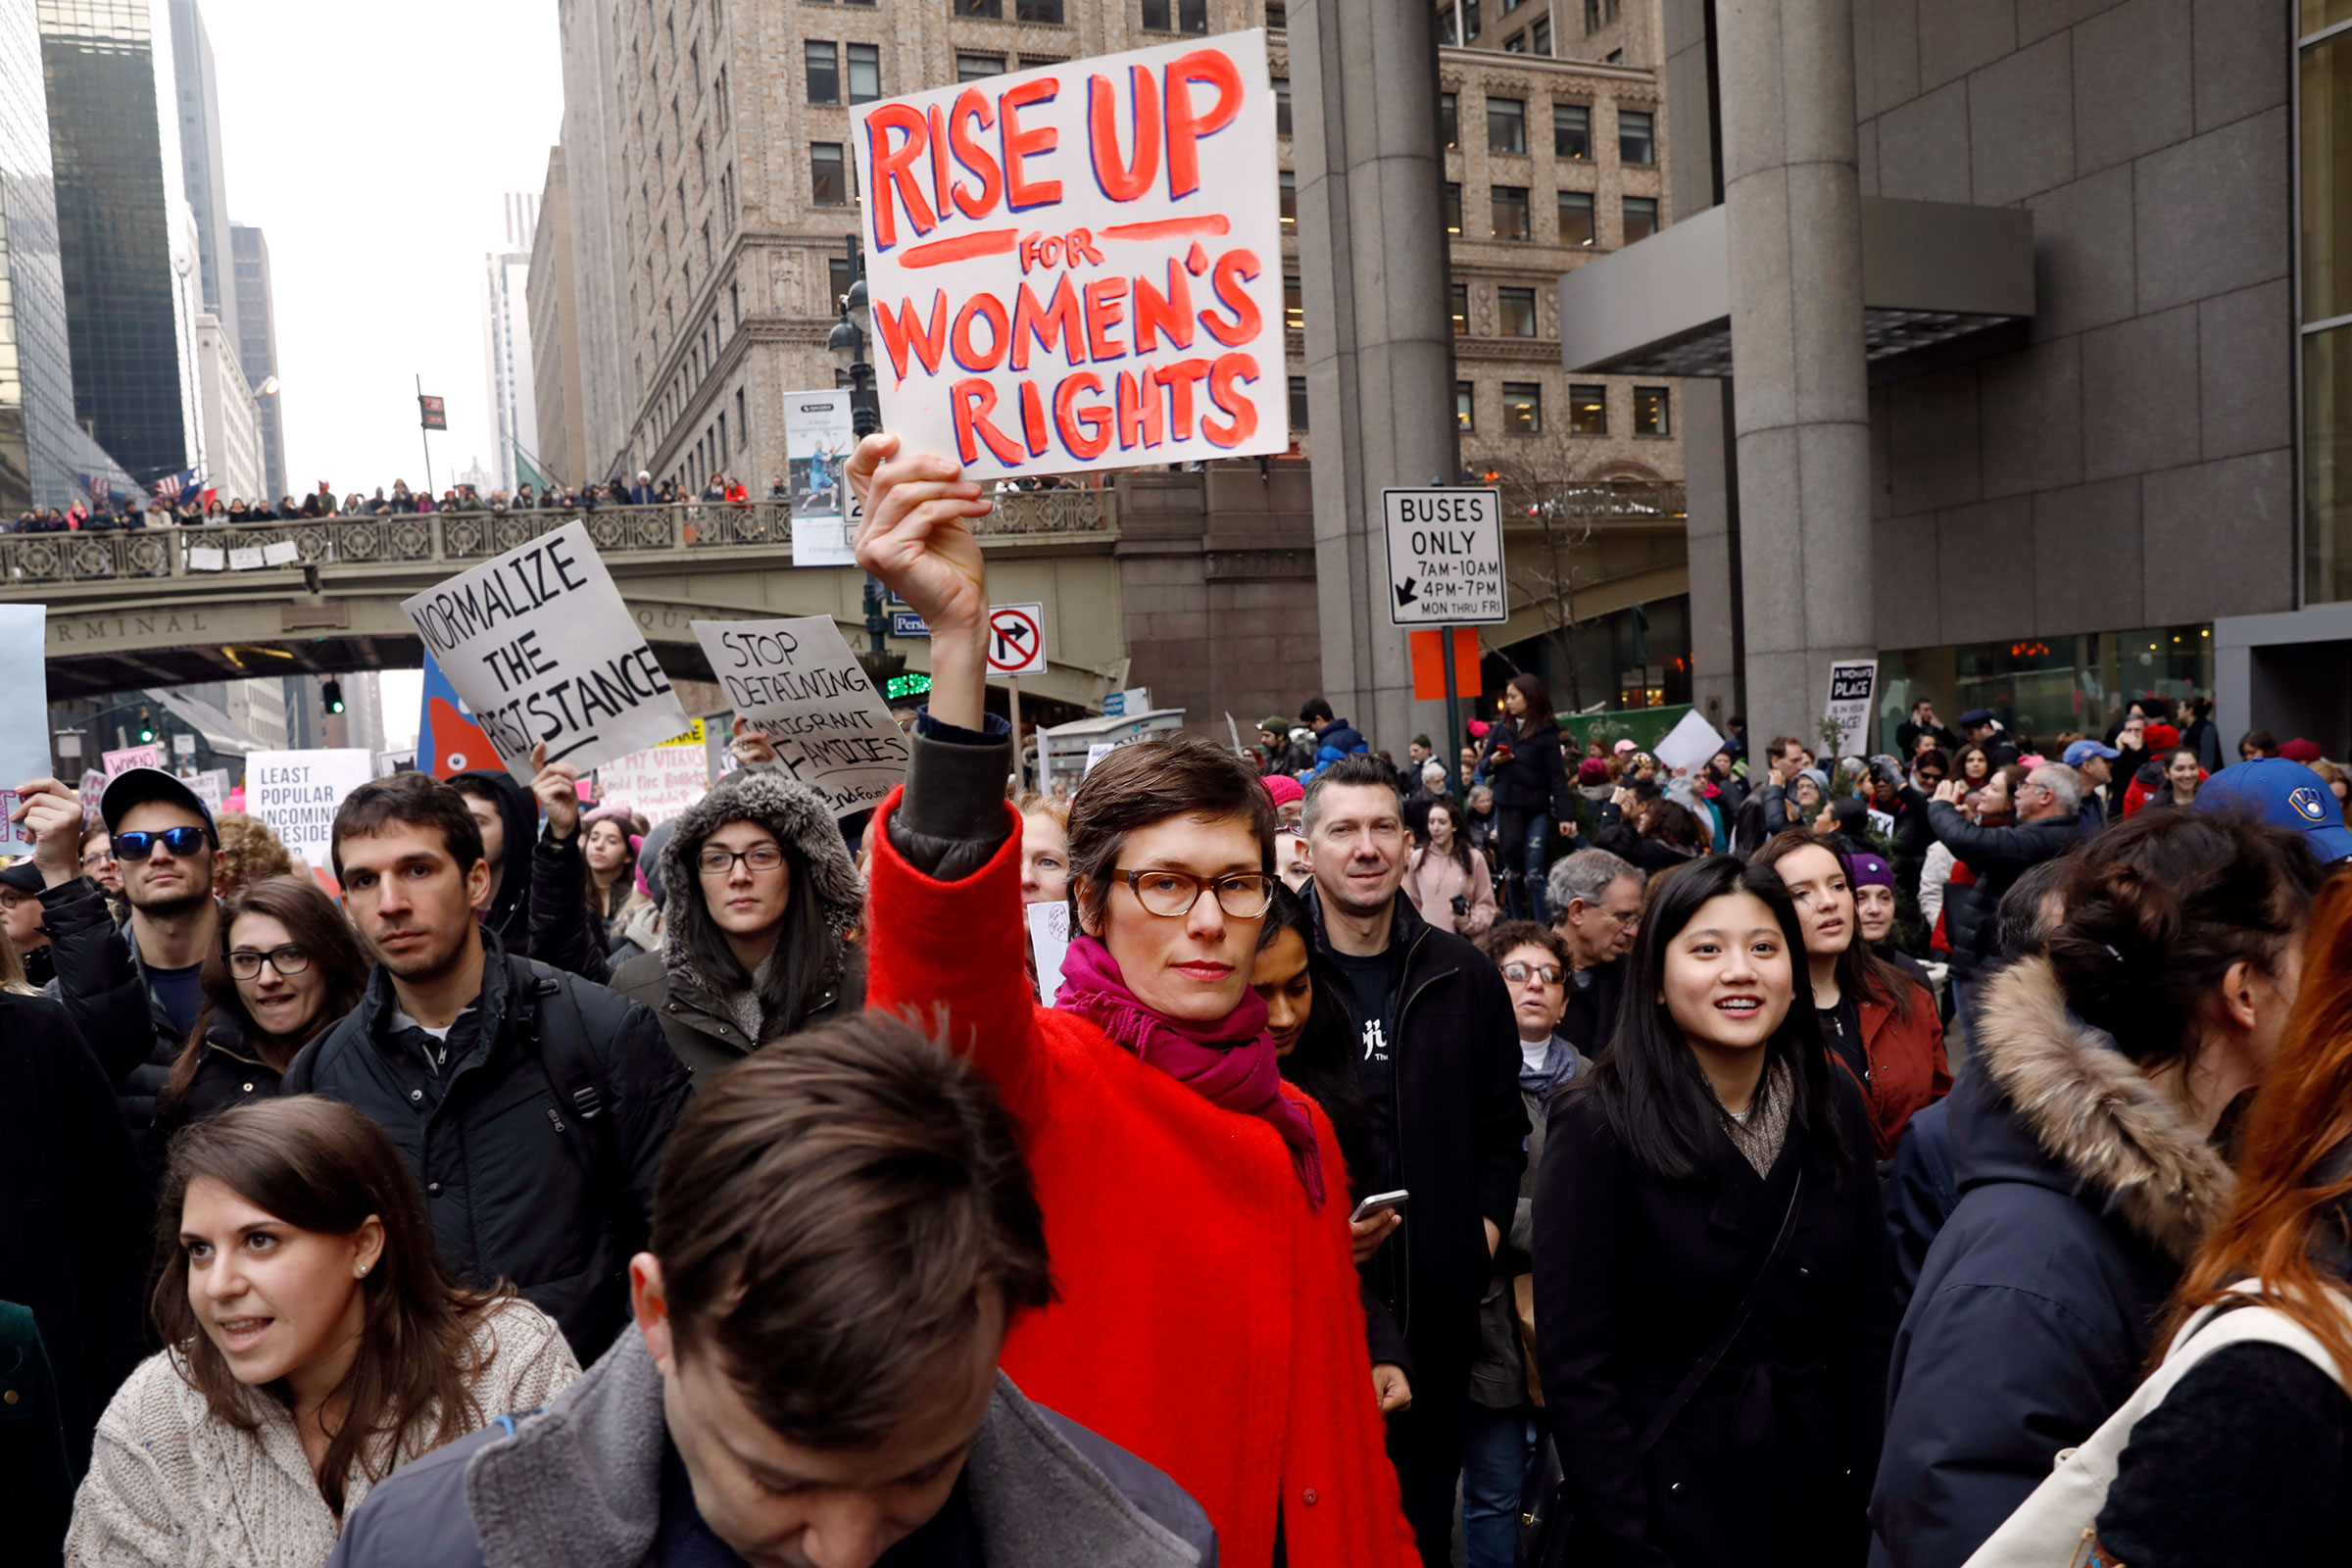 Women march in New York City. Photo: UN Women/Ryan Brown